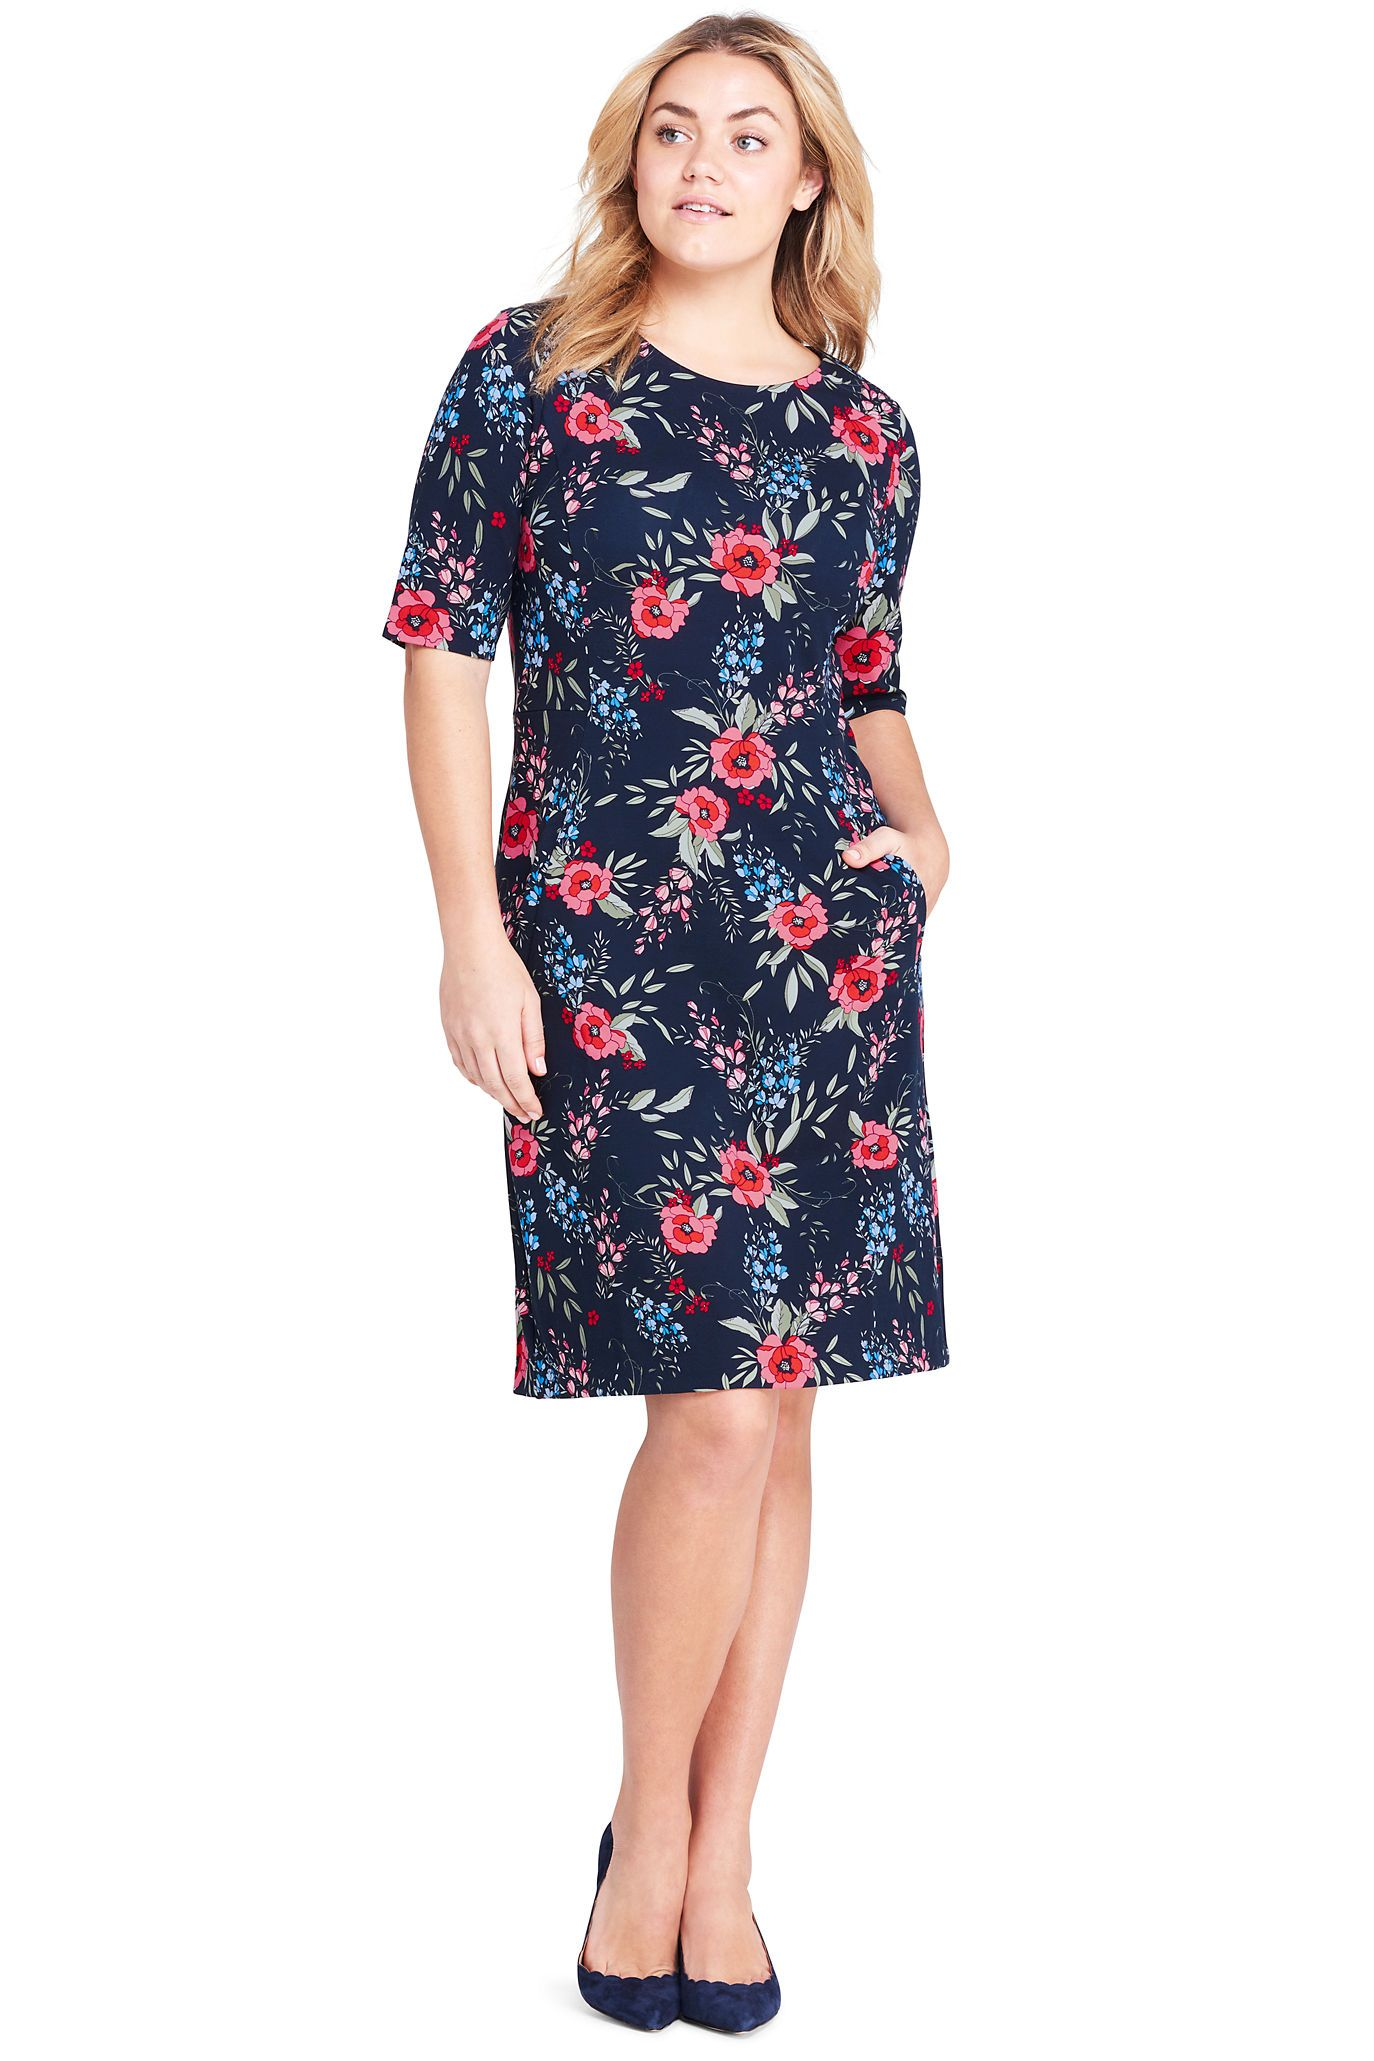 Lands End ponte dress - look! Pockets! | Thinking About Fashion ...